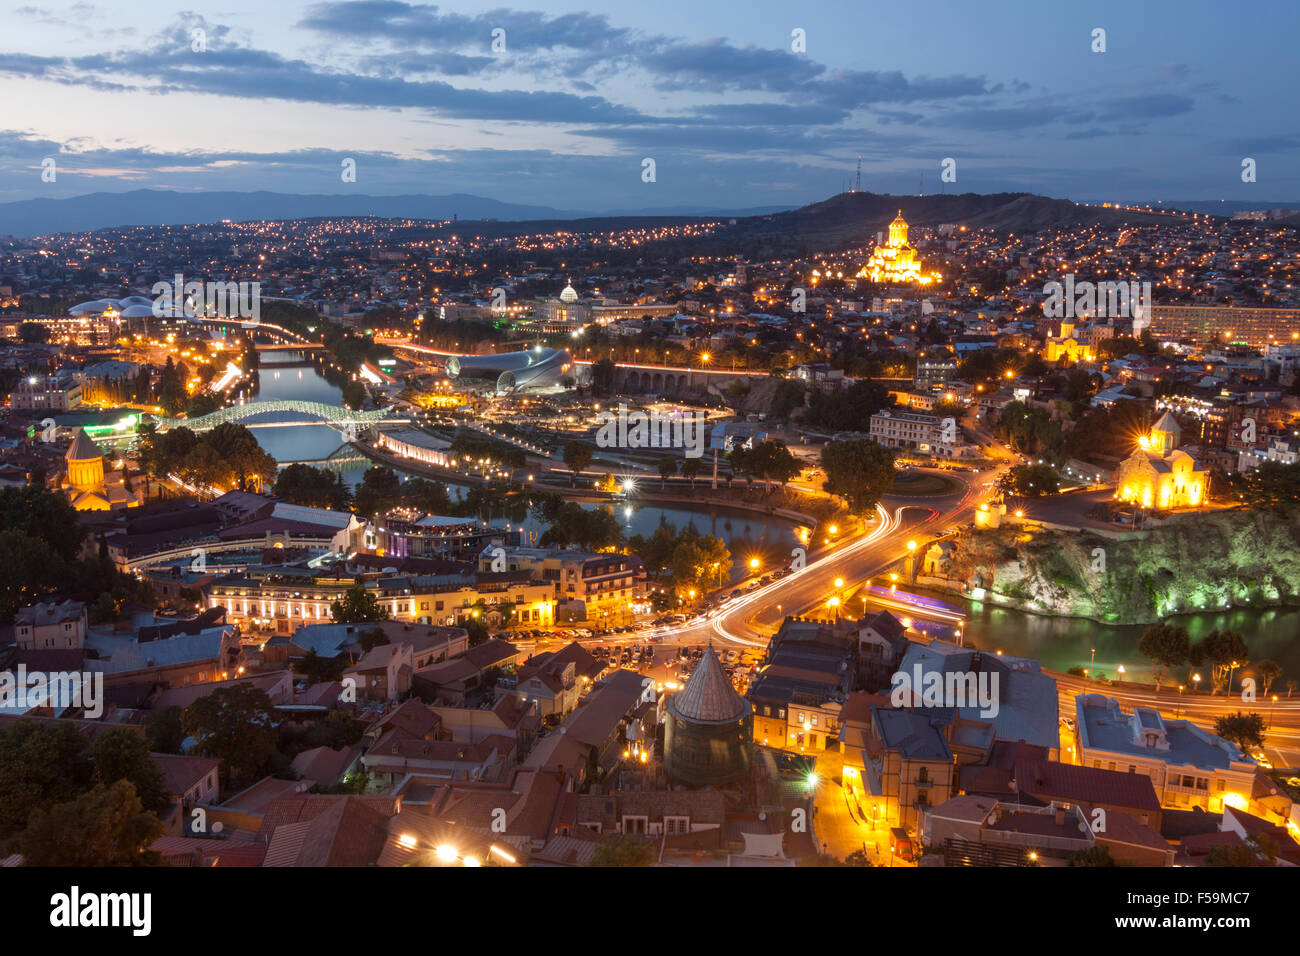 Overview of the historical center of Tibilisi at dusk. Georgia - Stock Image